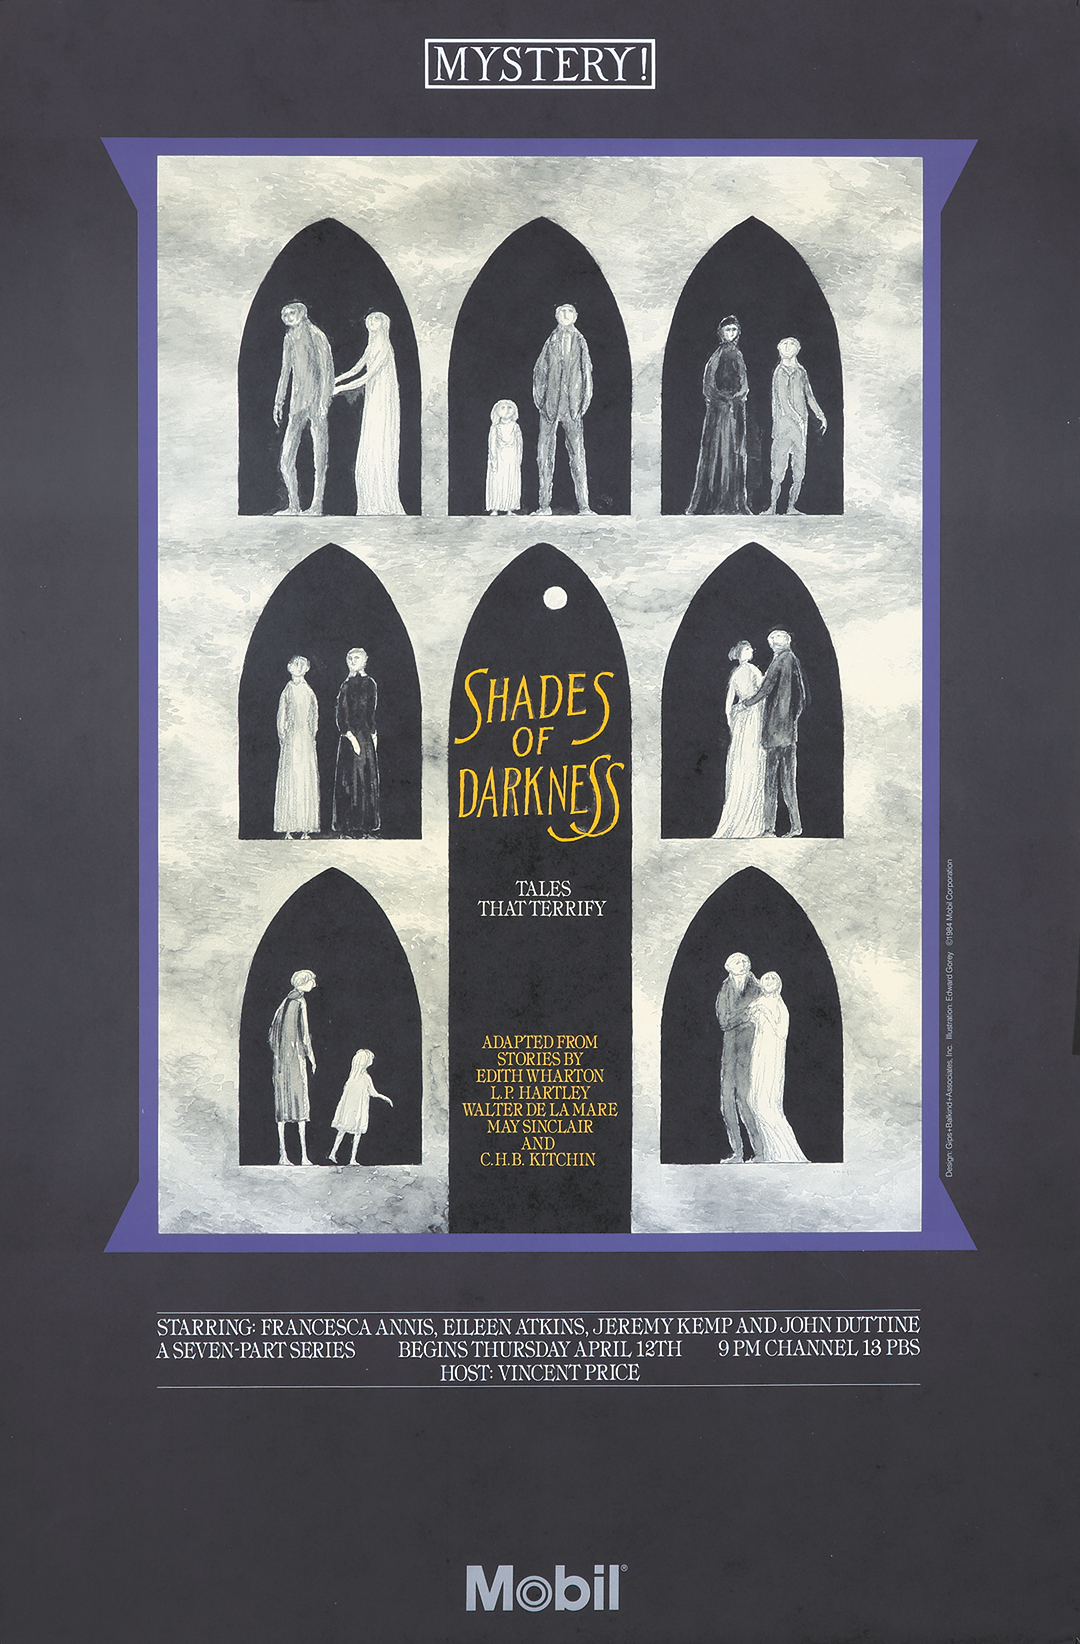 Mystery! / Shades of Darkness. 1980.